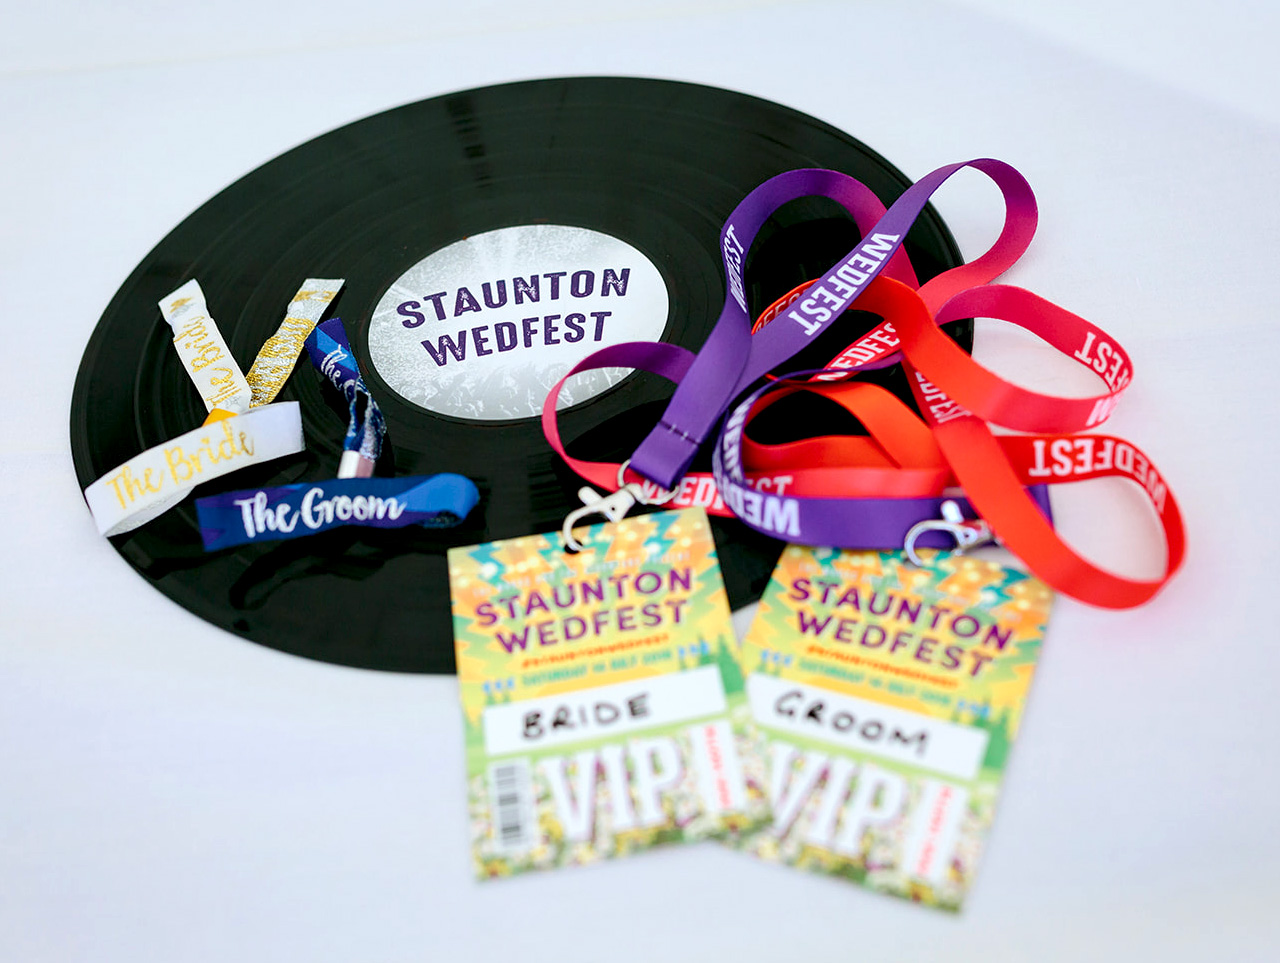 wedfest wristbands vip pass lanyards vinyl record stationery